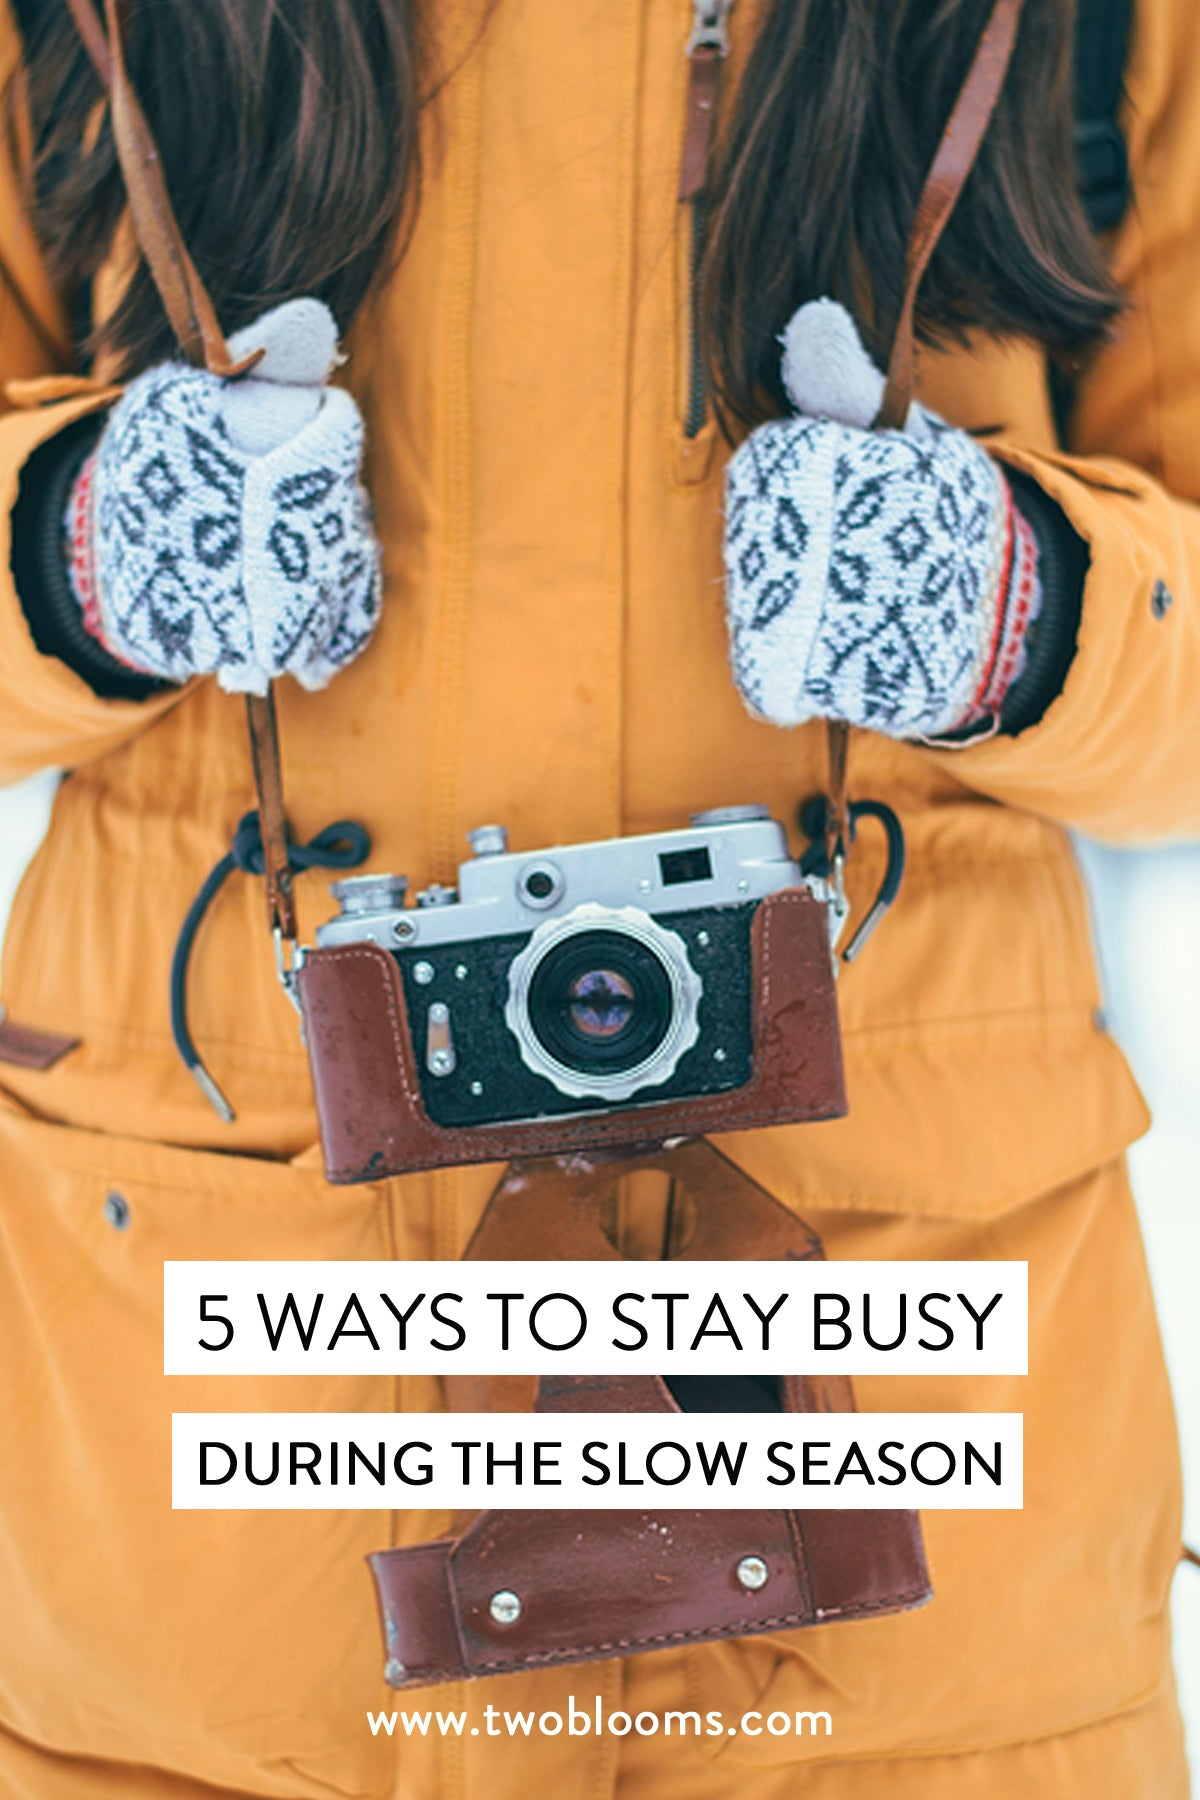 5-ways-to-stay-busy-in-slow-season